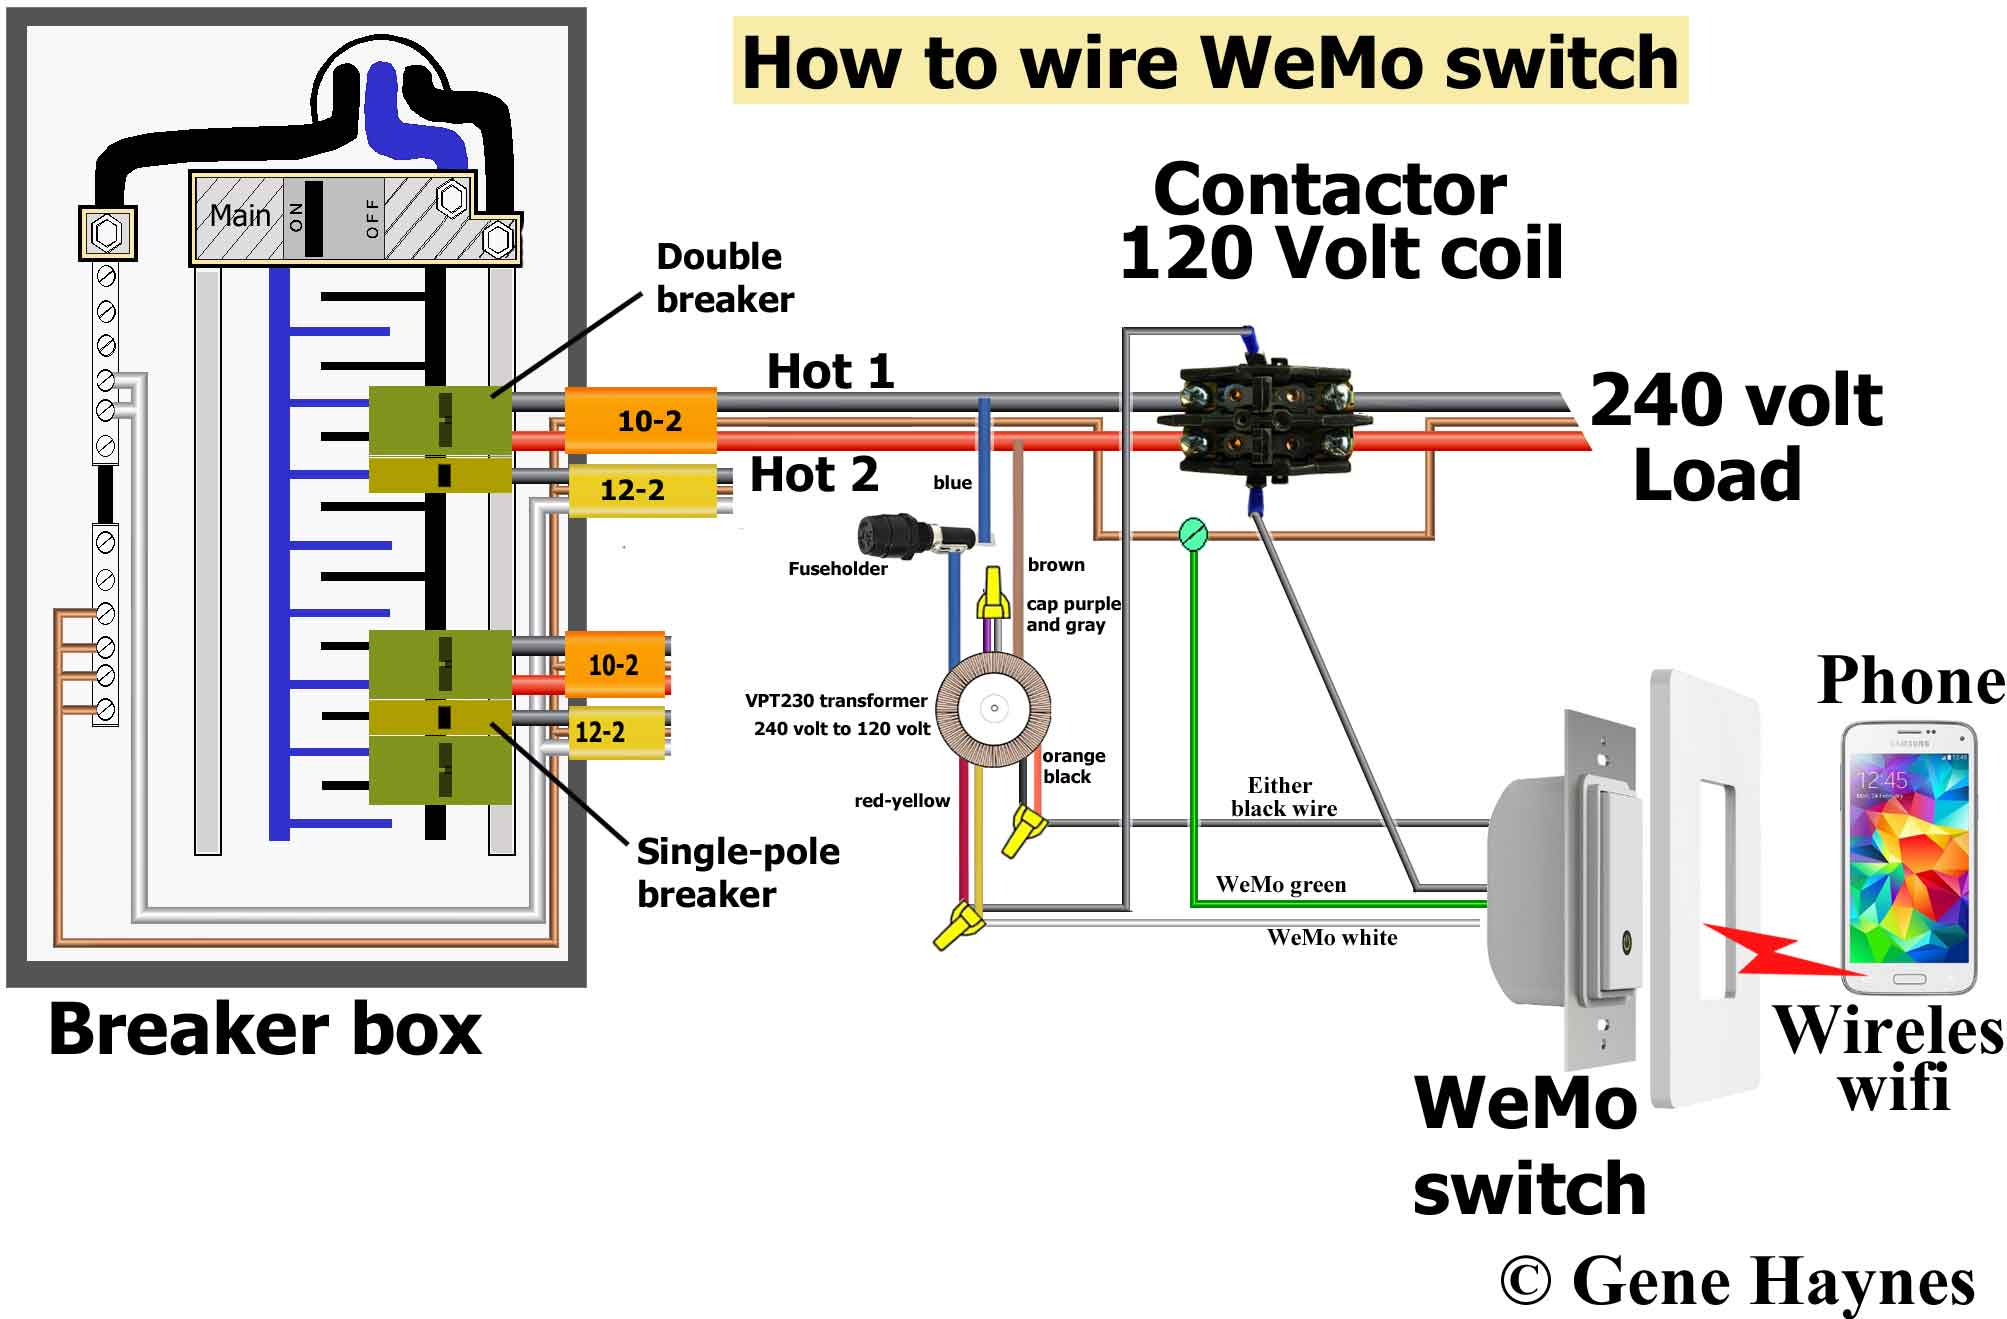 WeMo switch wiring illustration 32a control 240 volt with wemo 240 volt breaker wiring diagram at edmiracle.co